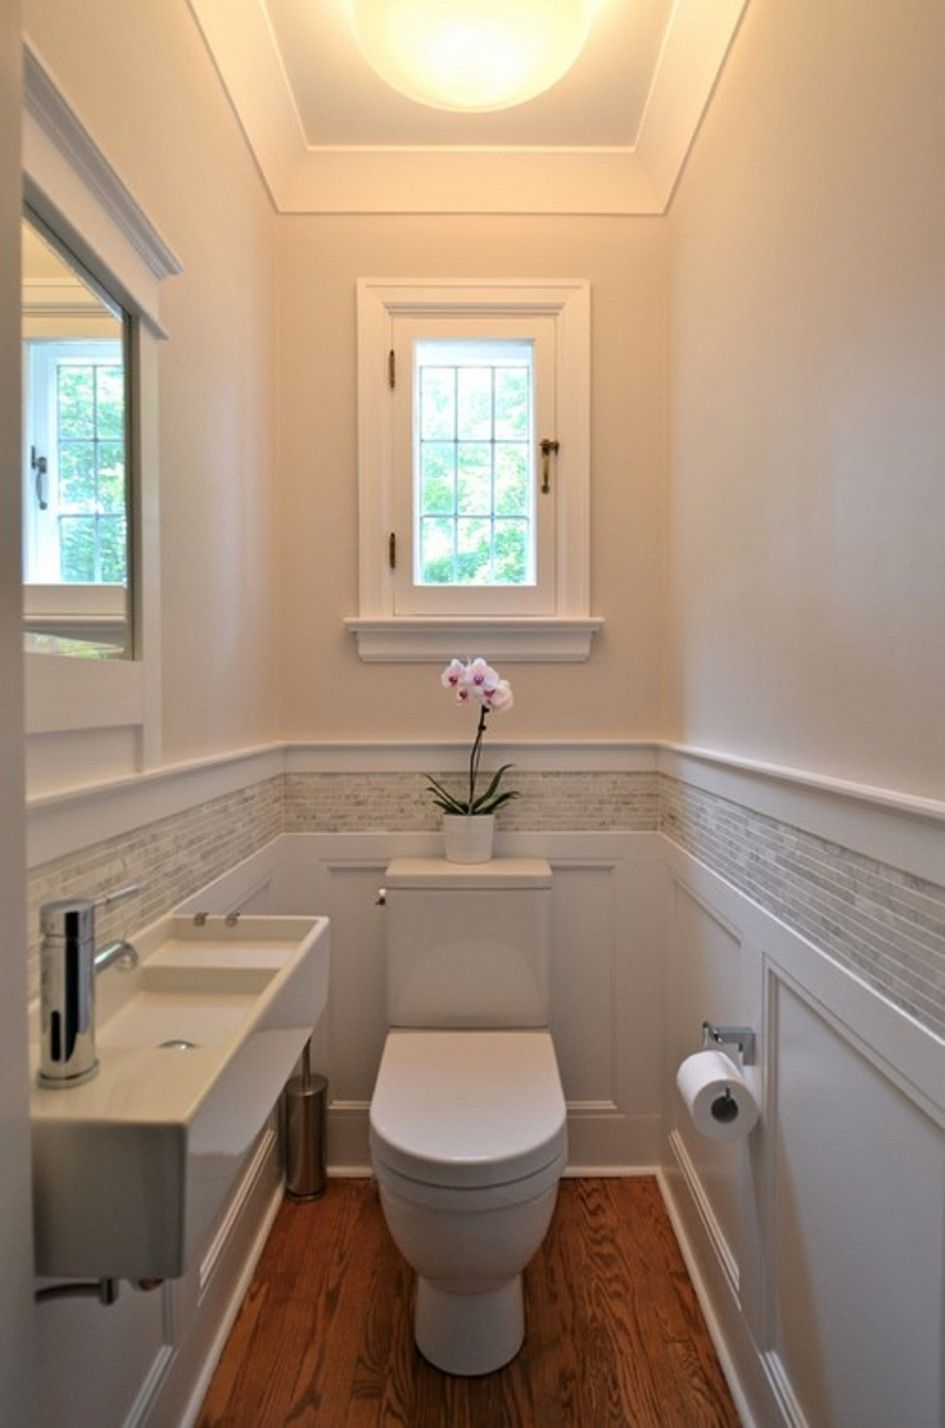 Bathroom, Glamorous Photos Of Bathroom Remodel Cost And Small Powder Room  With White Bathroom Design